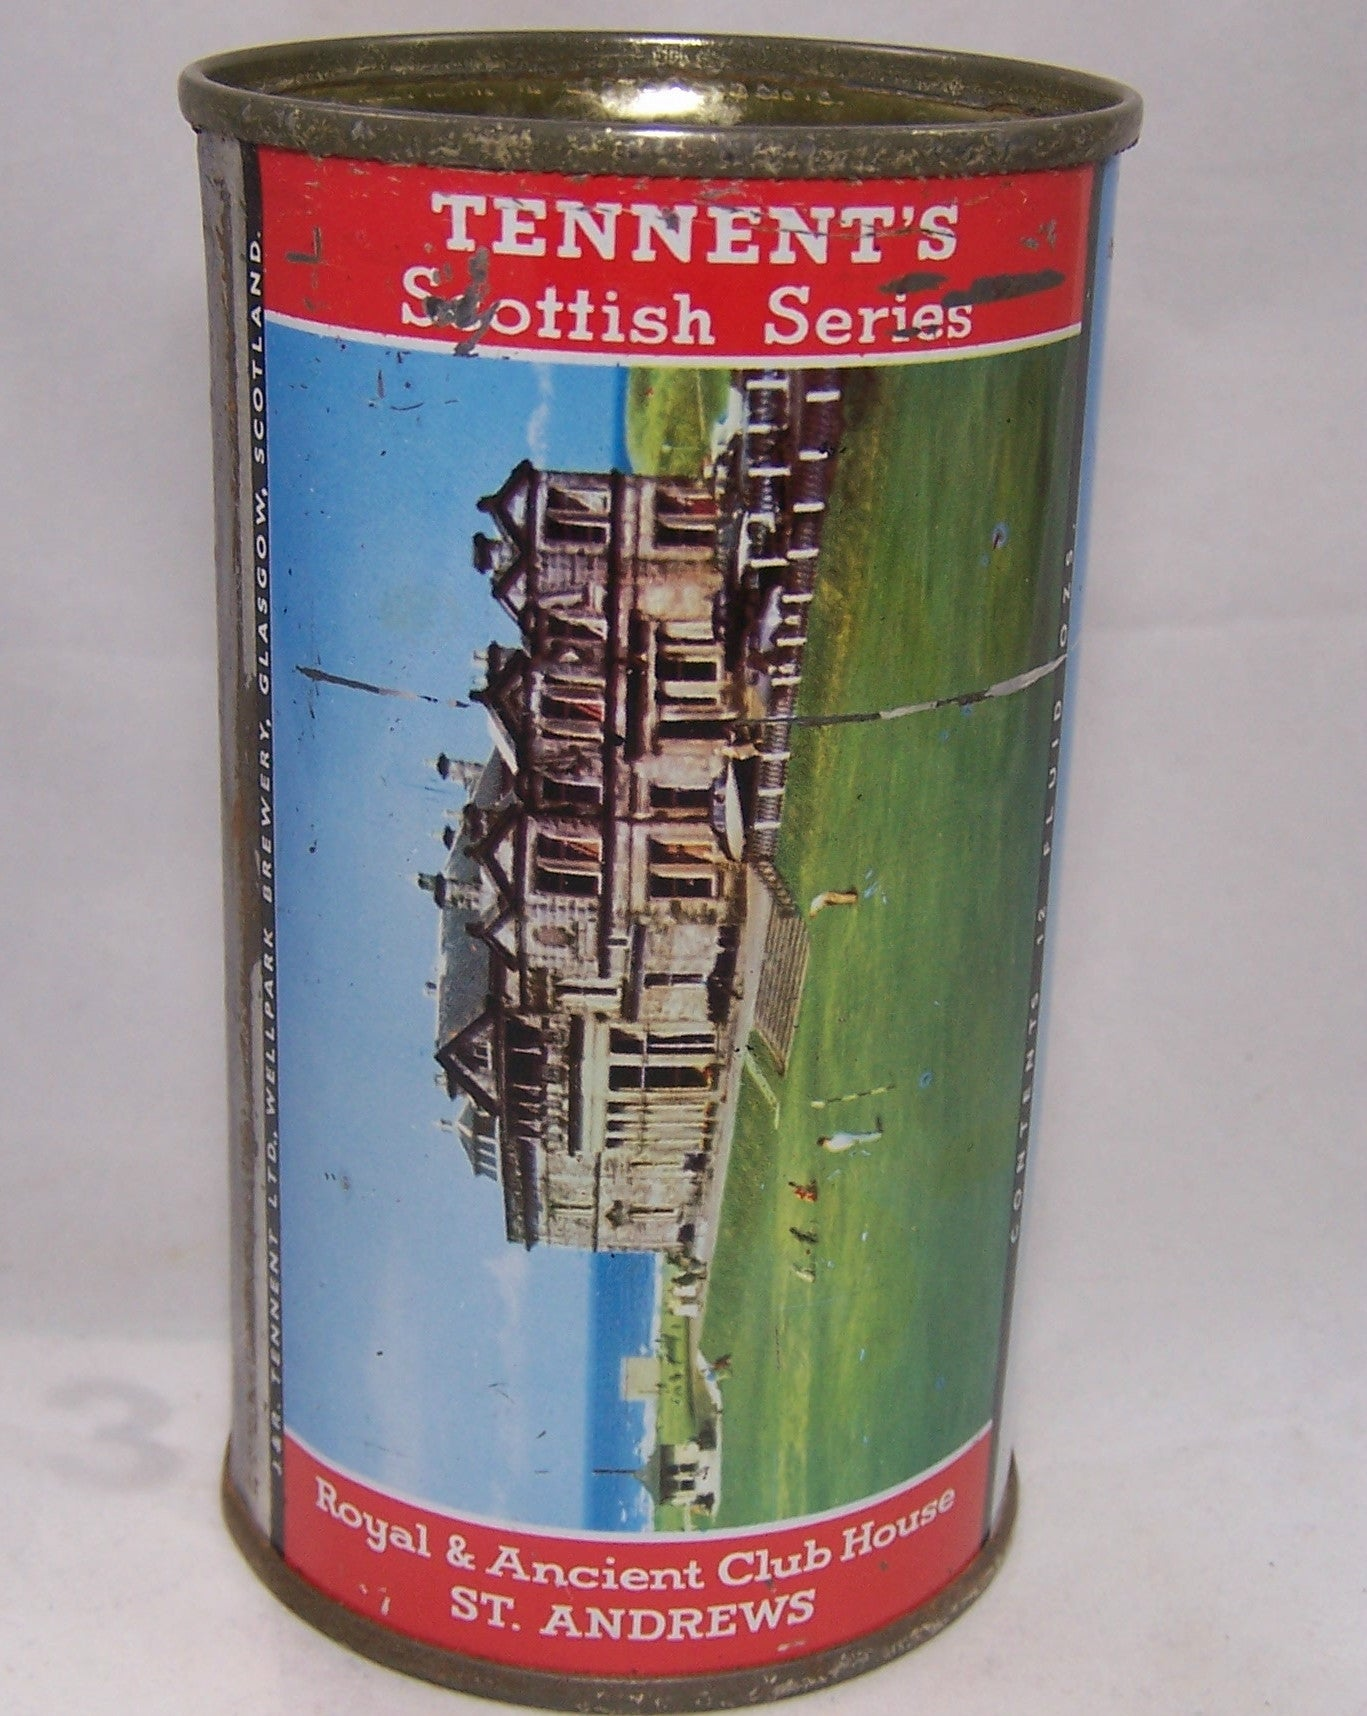 "Tennent's Lager Scottish Series, ""Royal Club House"" St. Andrews, Grade 1-"